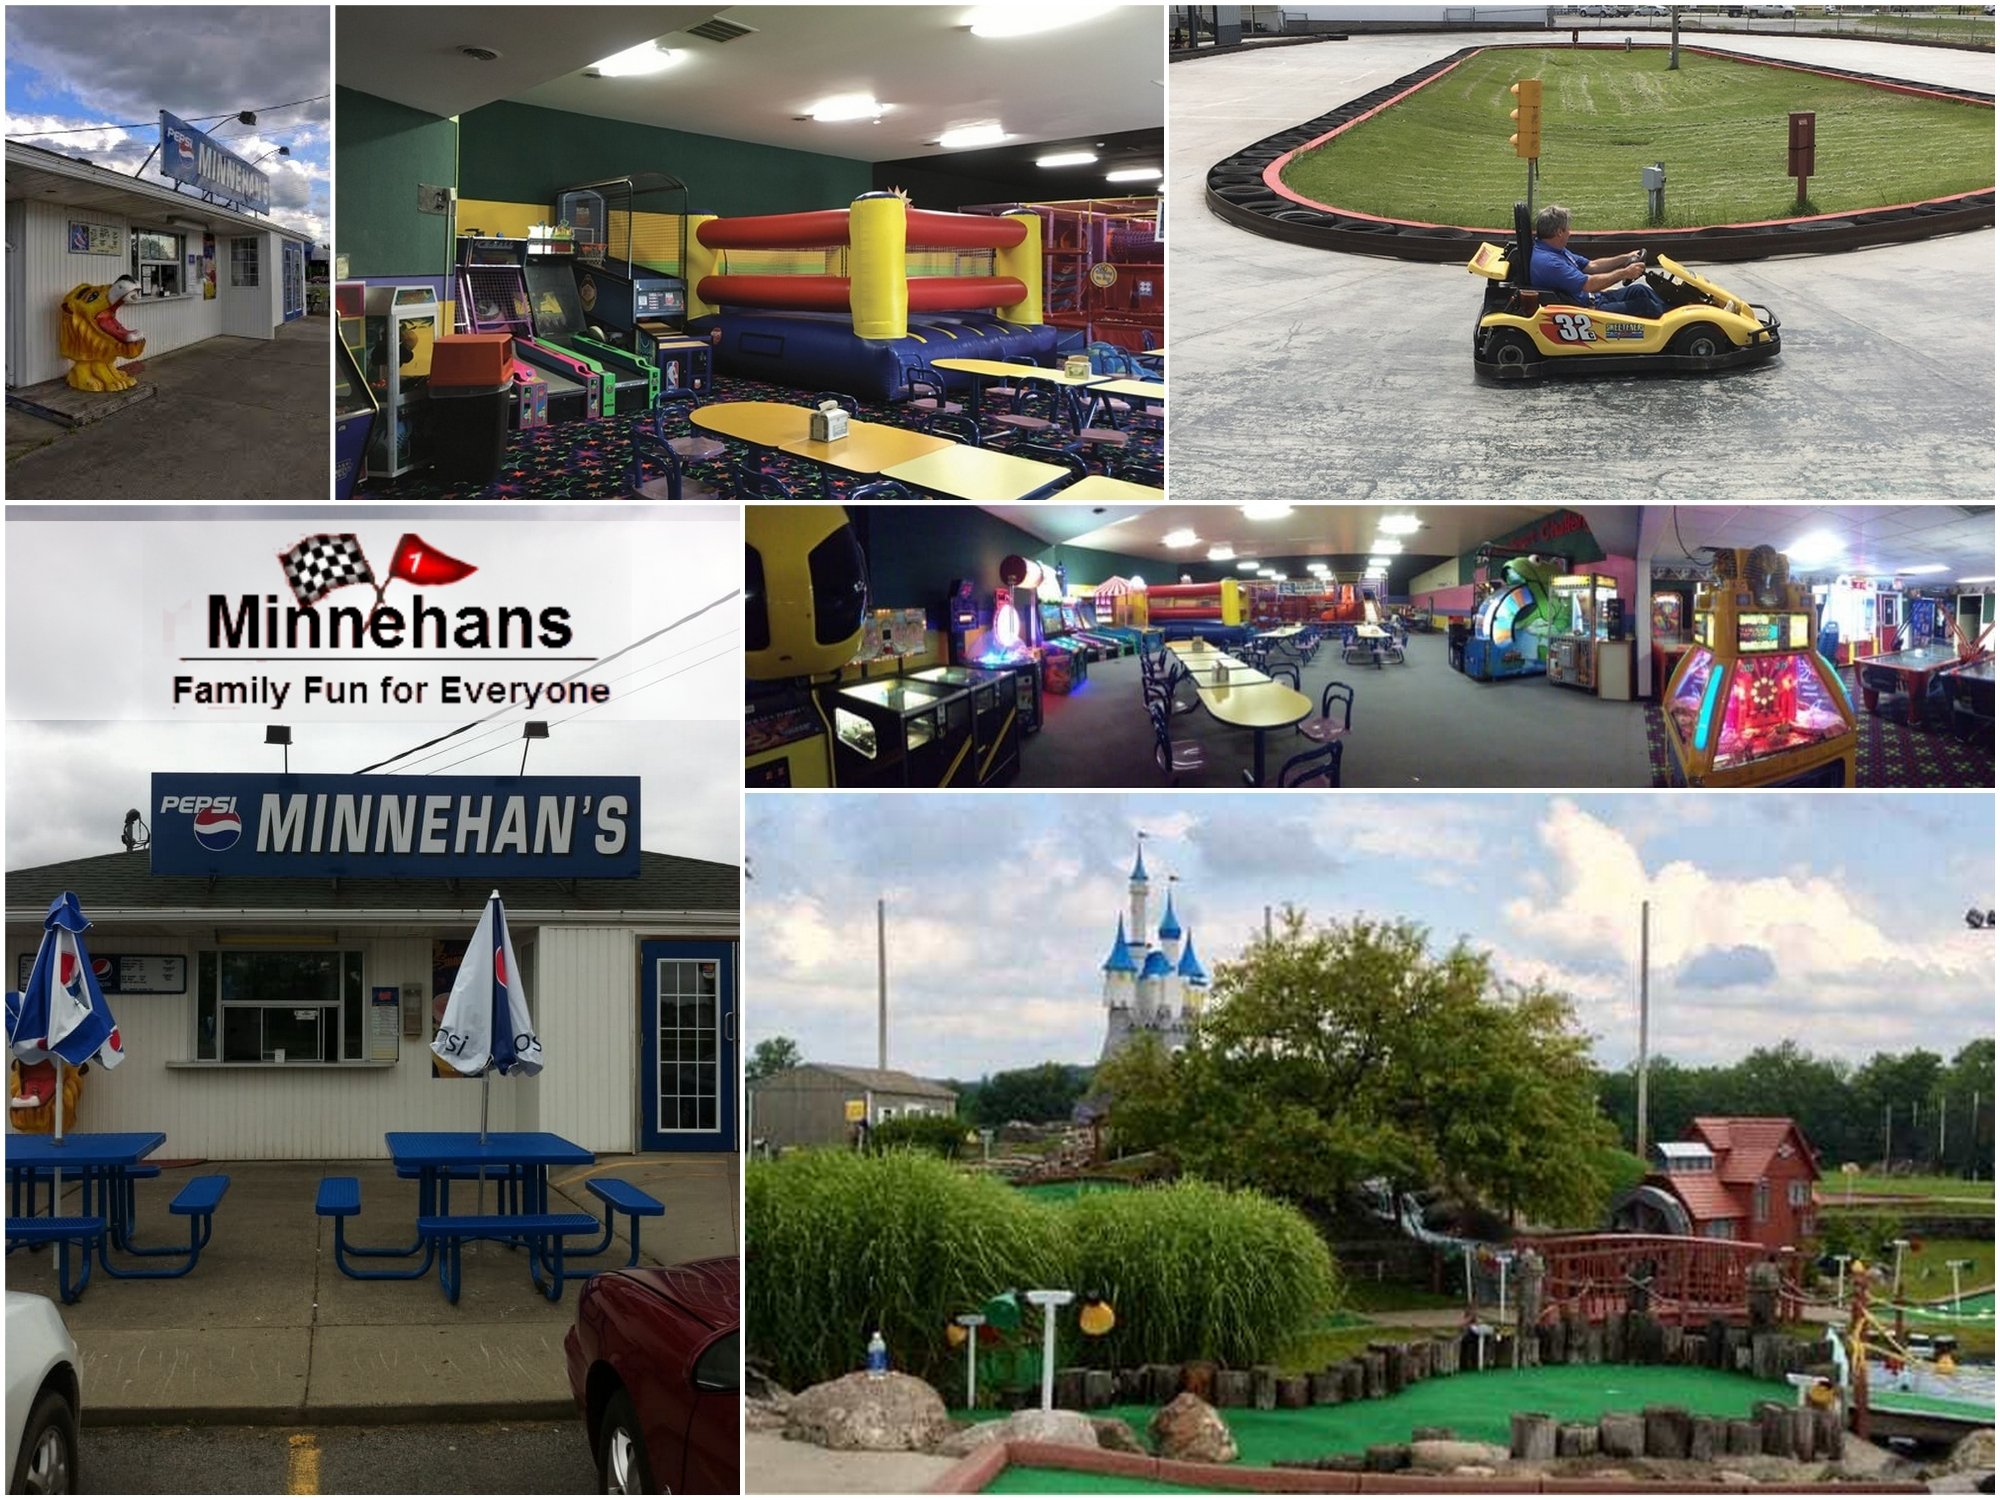 Minnehan's Family Fun Center, Lakeville, Minnehans, February Specials, Livingston County Chamber, Attractions, Trip Planner,